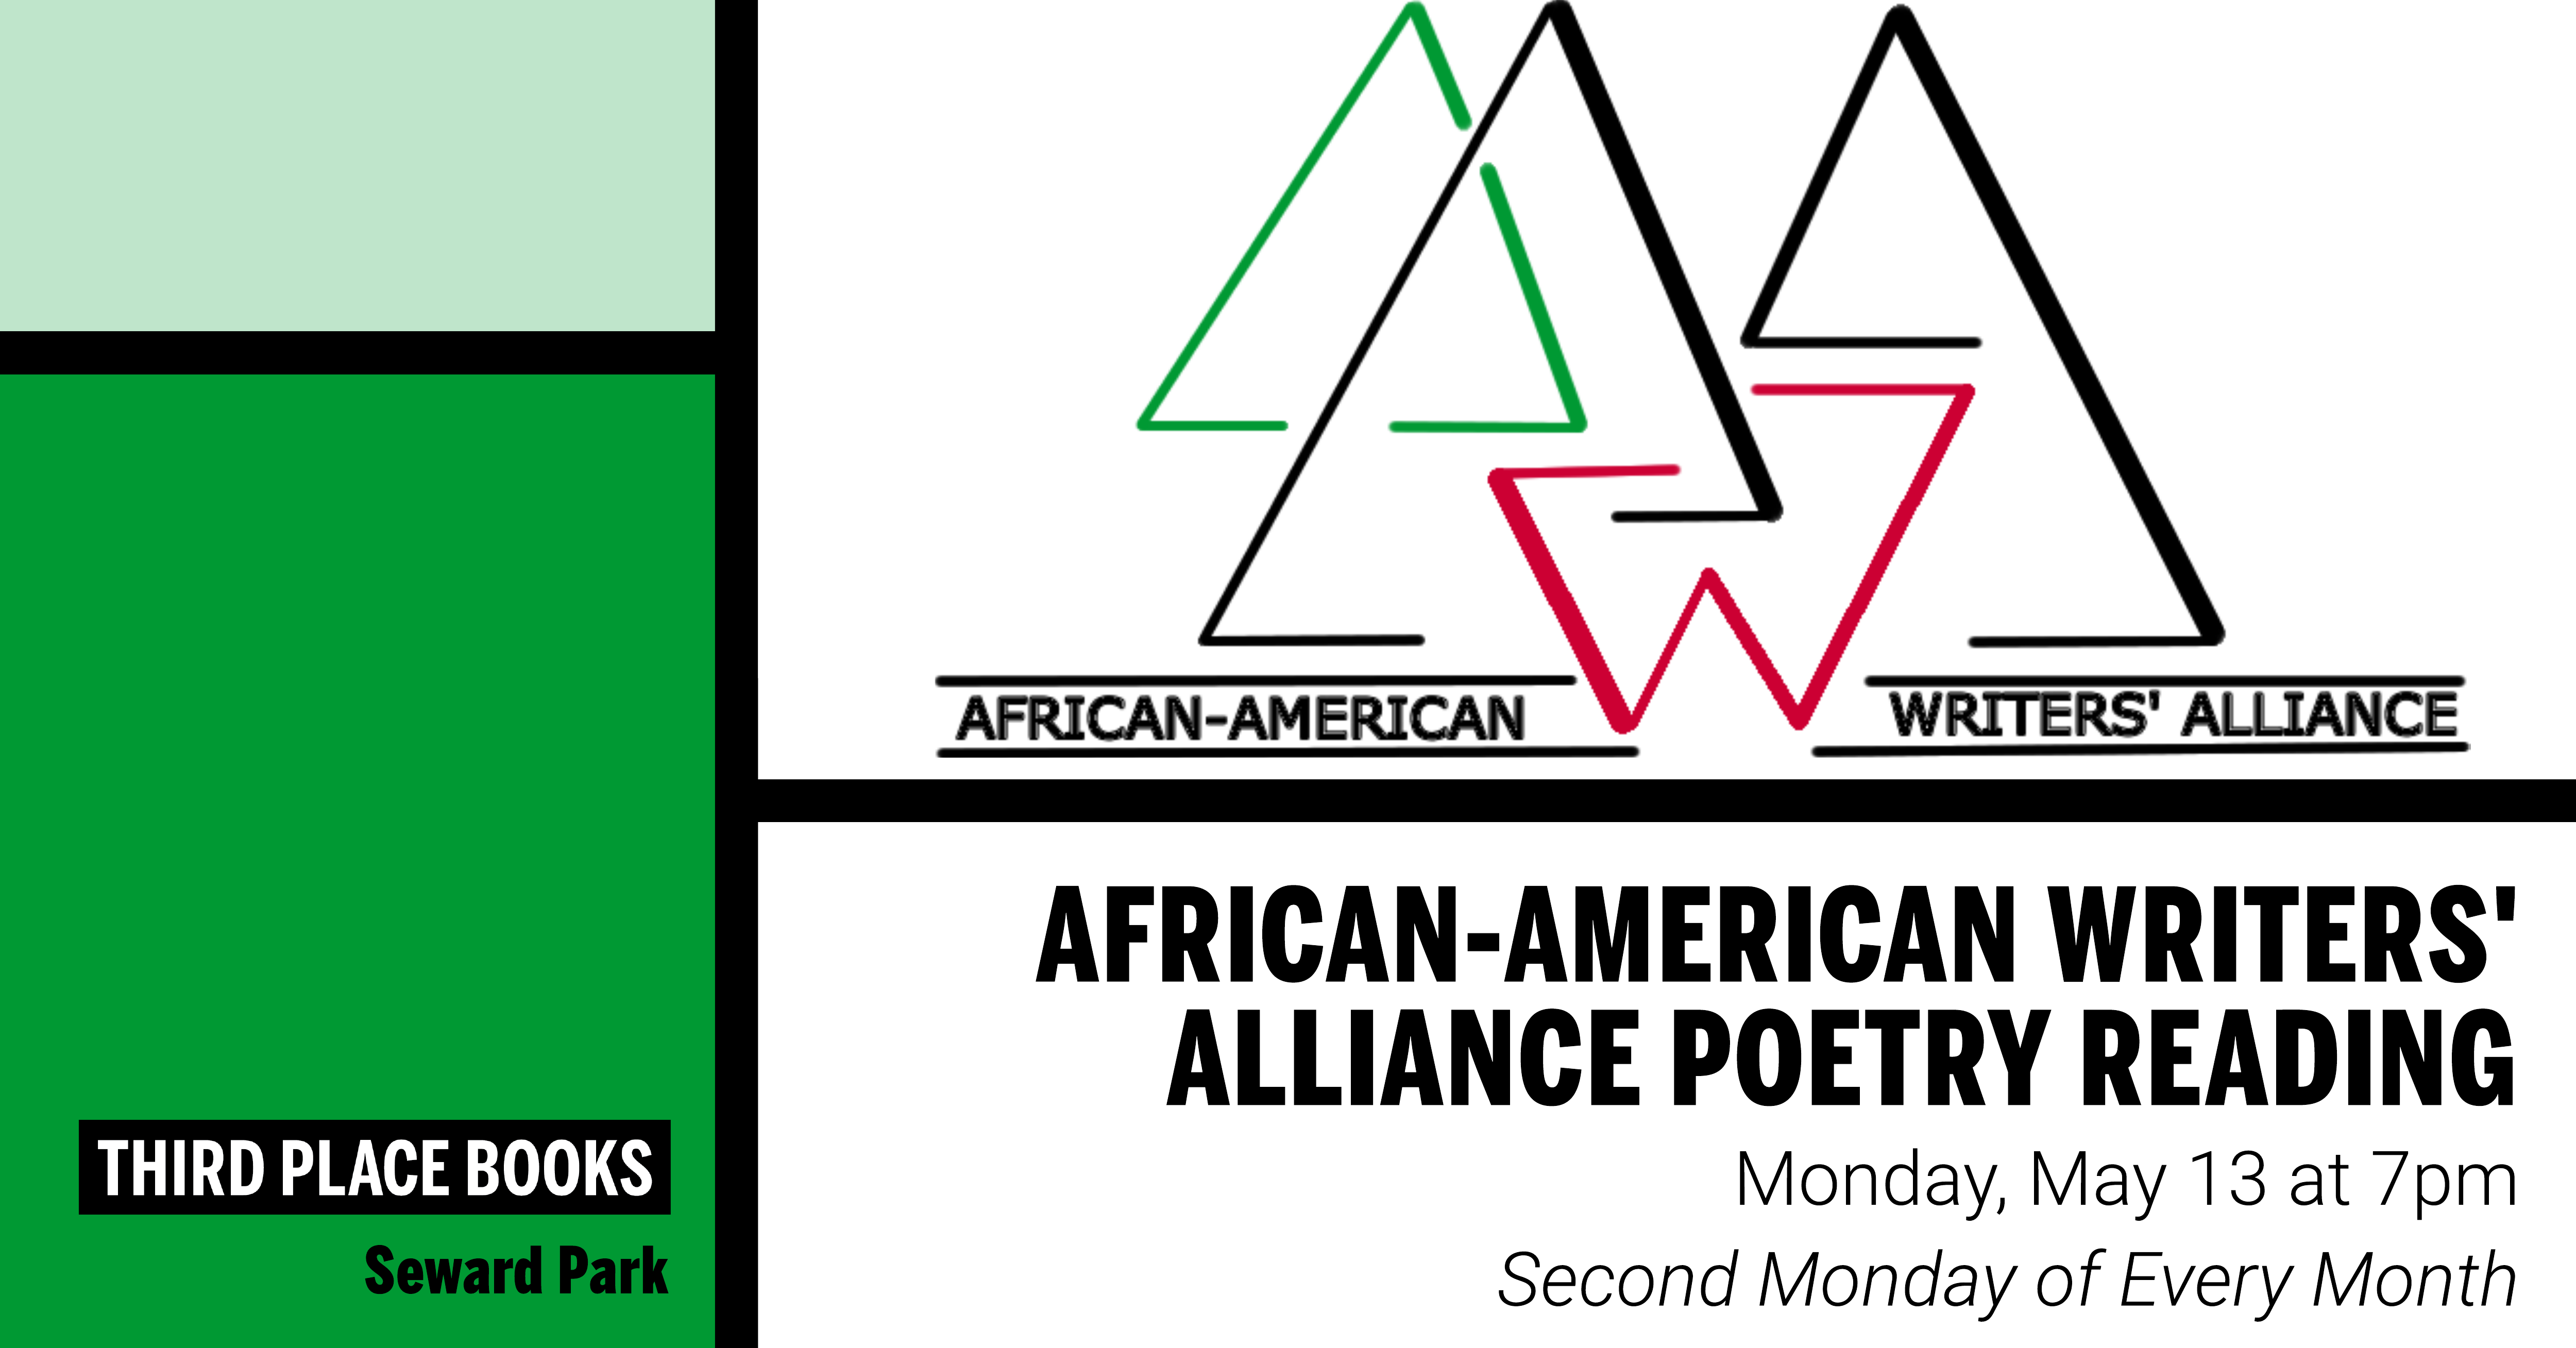 African-American Writers' Alliance Reading on Monday, May 13 at 7pm